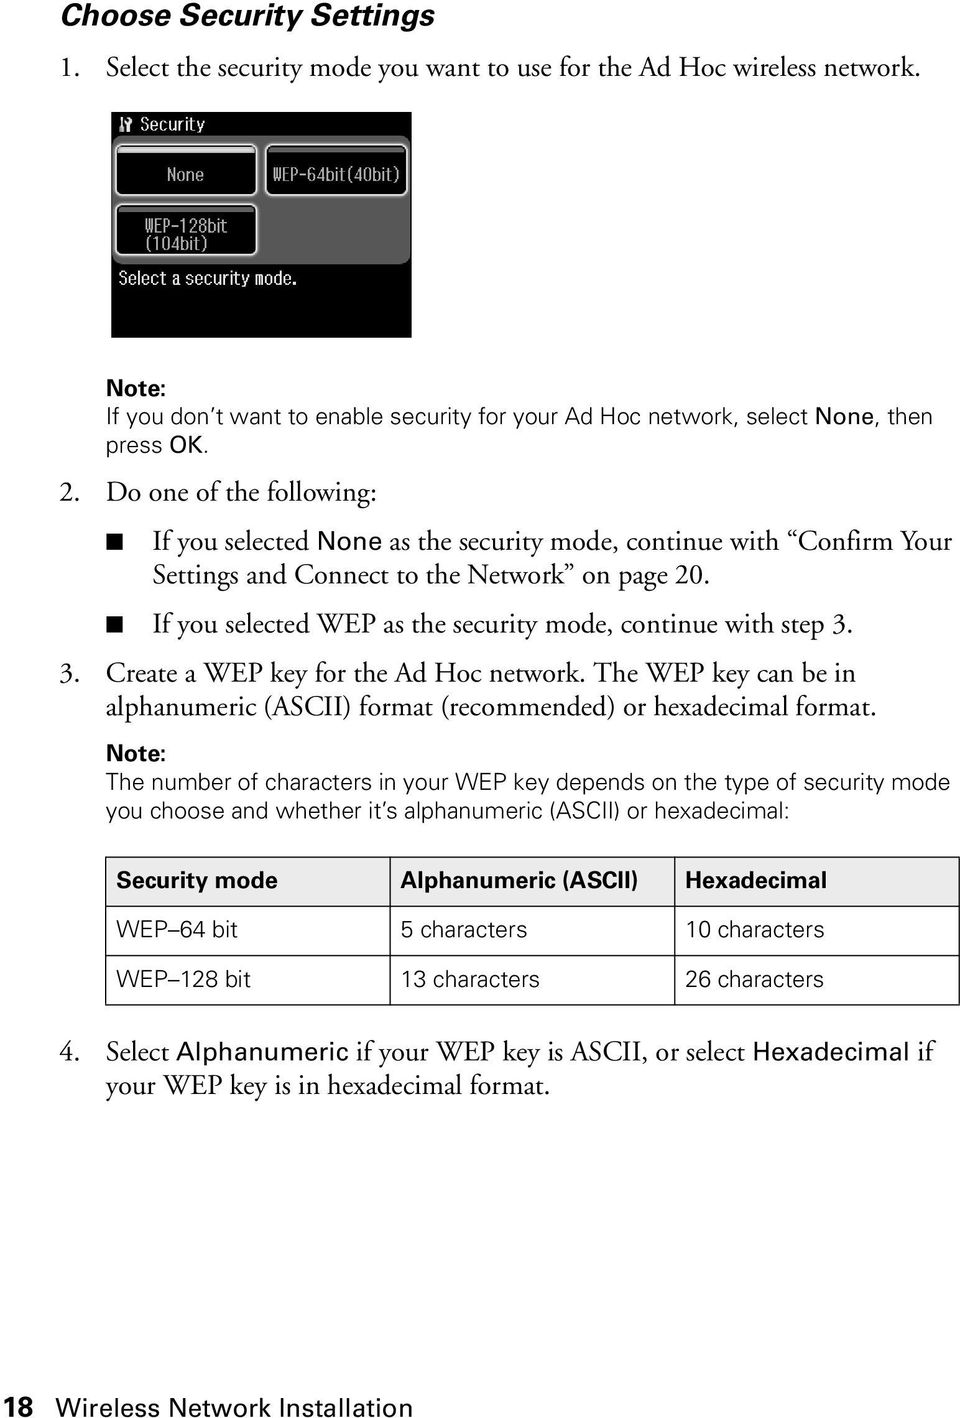 If you selected WEP as the security mode, continue with step 3. 3. Create a WEP key for the Ad Hoc network. The WEP key can be in alphanumeric (ASCII) format (recommended) or hexadecimal format.